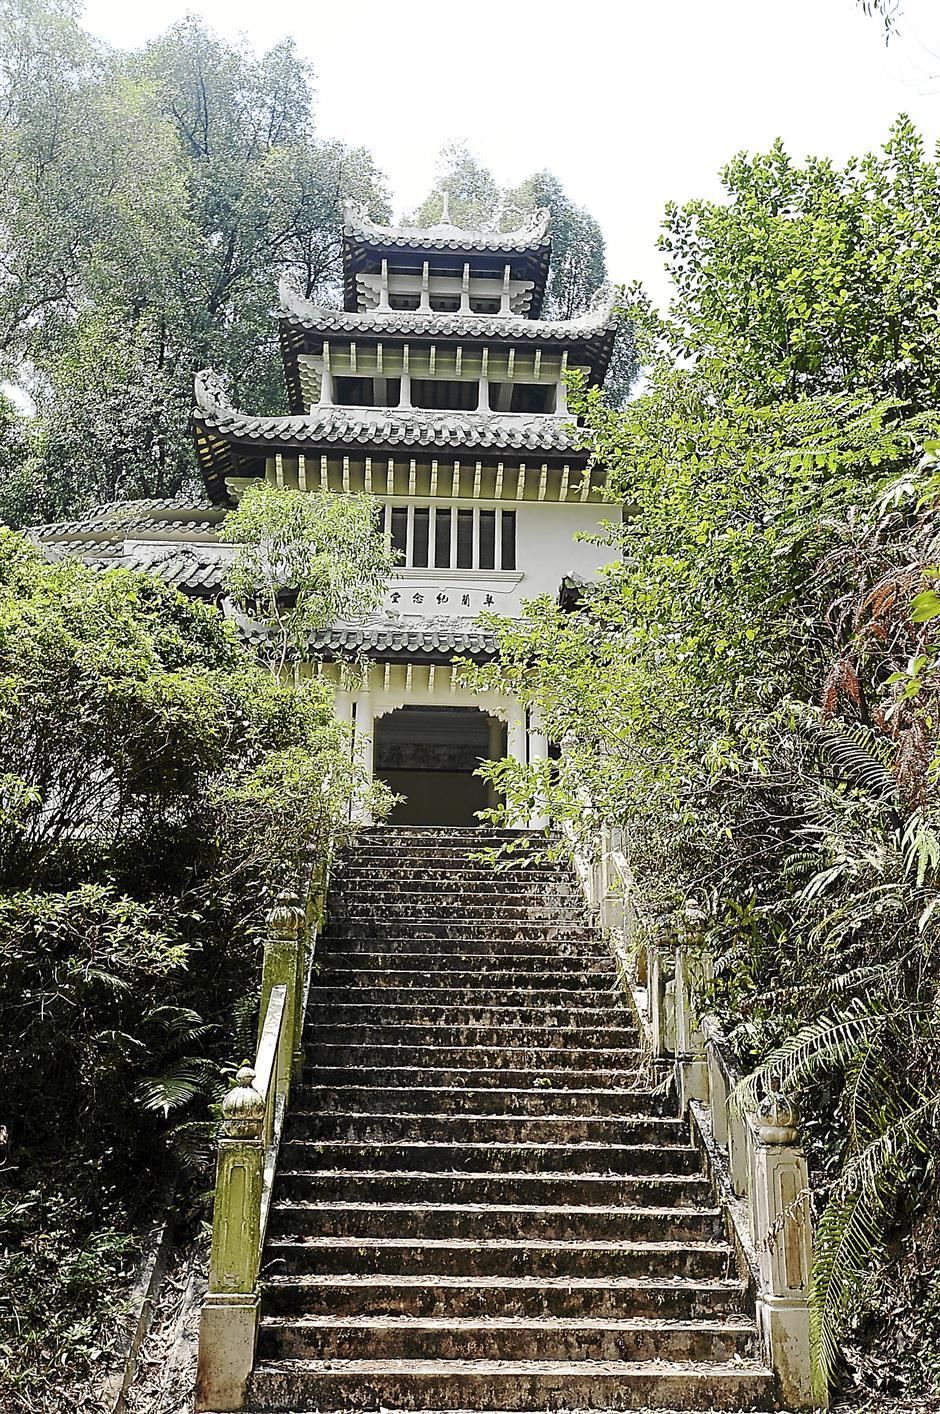 Special remembrance: A four-storey elaborate memorial hall was built next to Loke Yew's grave but is left vacant. Strangely, the building has no staircase leading to the upper levels.